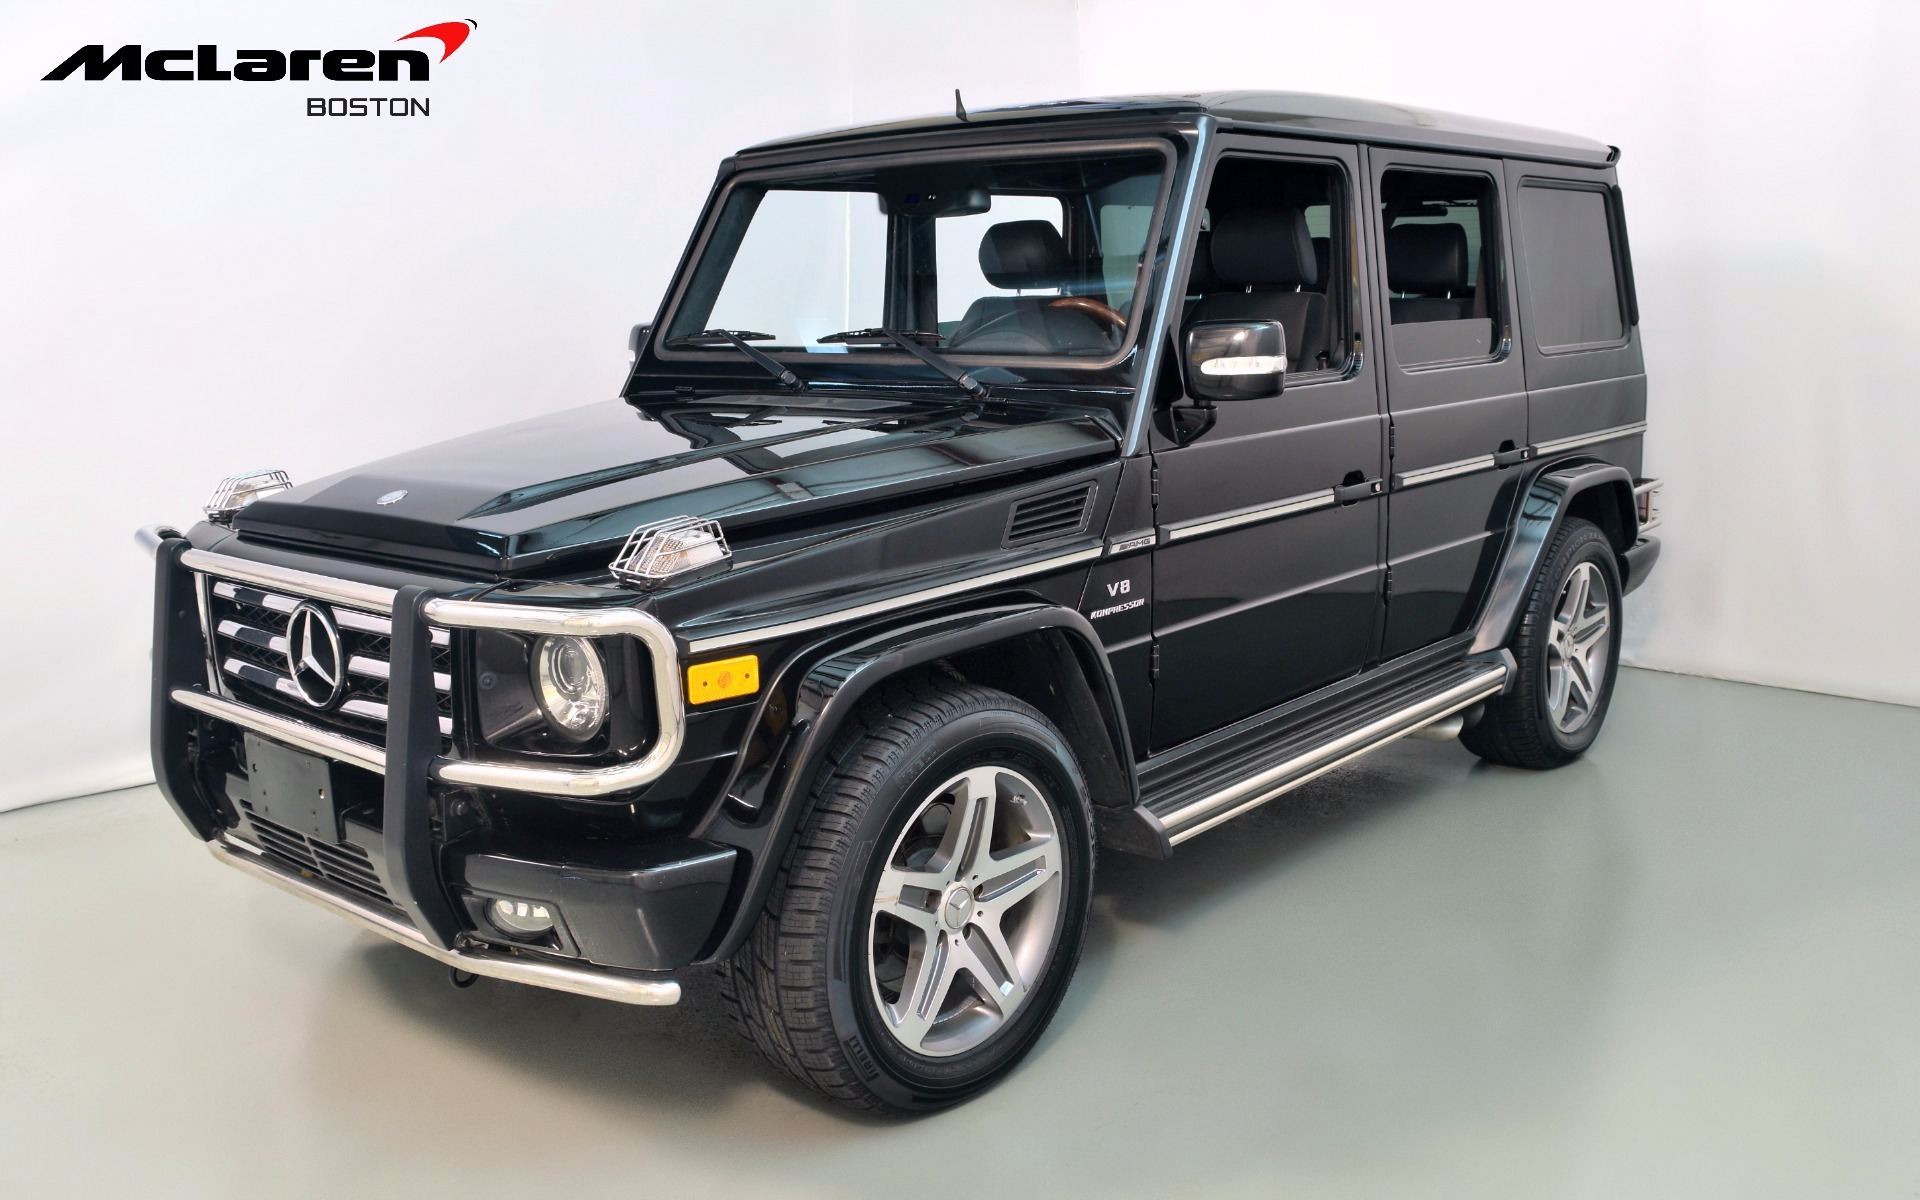 2009 Mercedes Benz G Class 5 5l Amg For Sale In Norwell